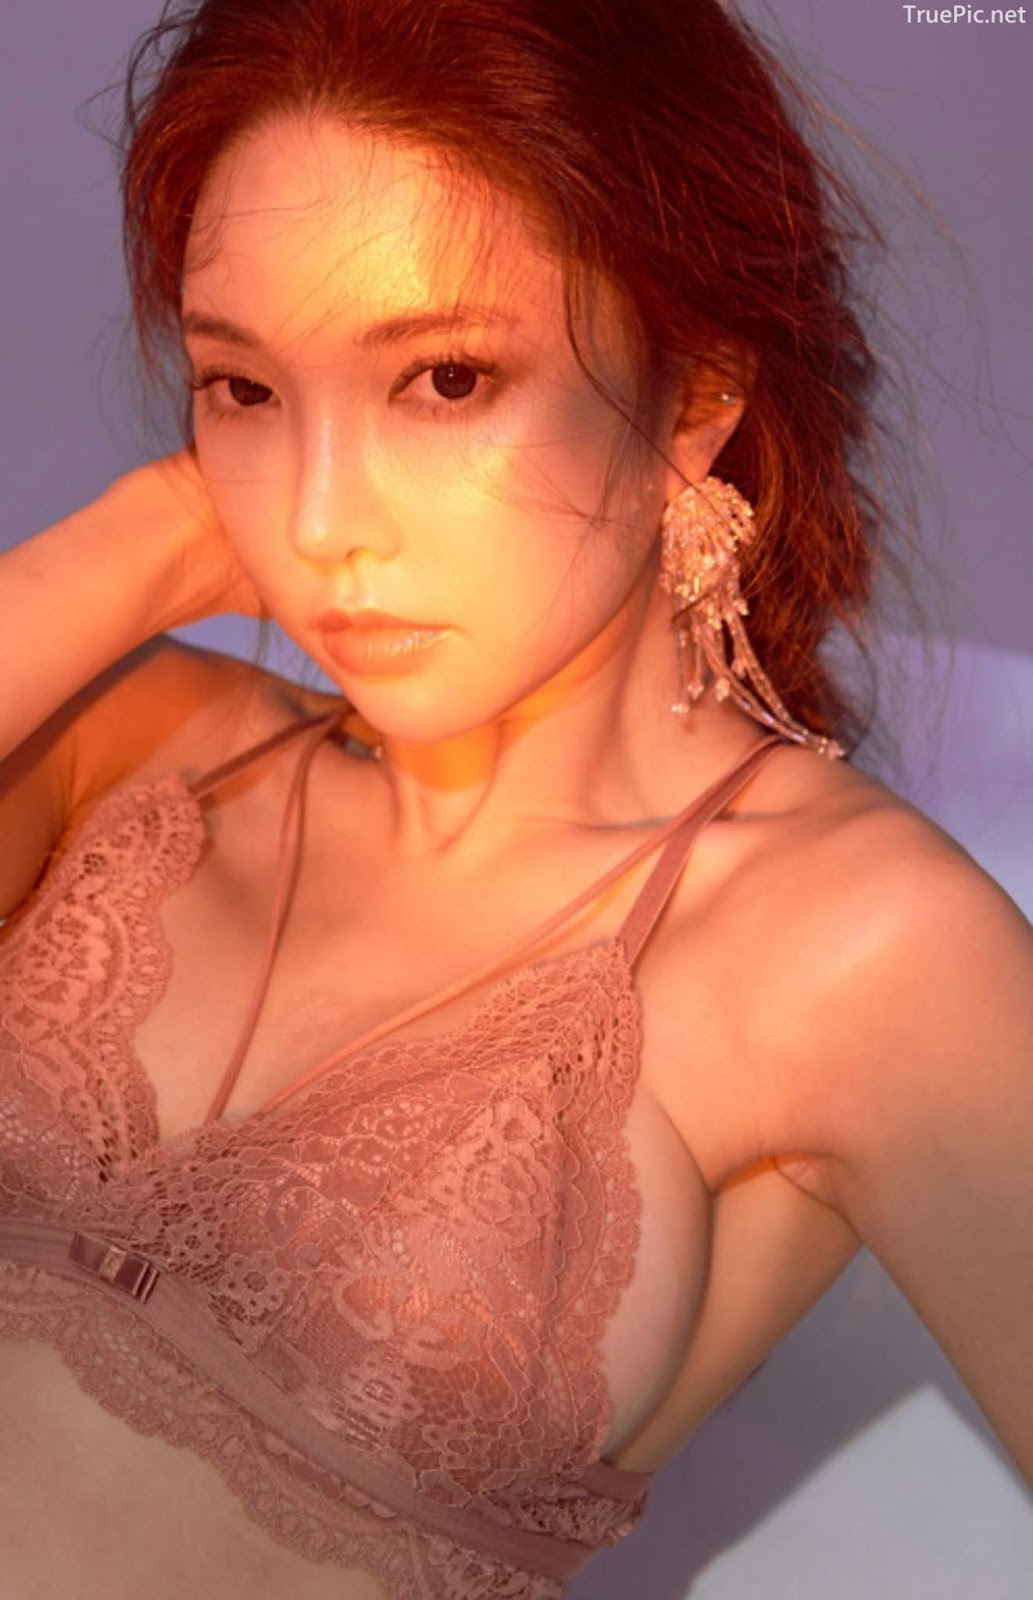 Korean model and fashion - Park Soo Yeon - Off-White Lavender and Salmon Pink Bra - Picture 1